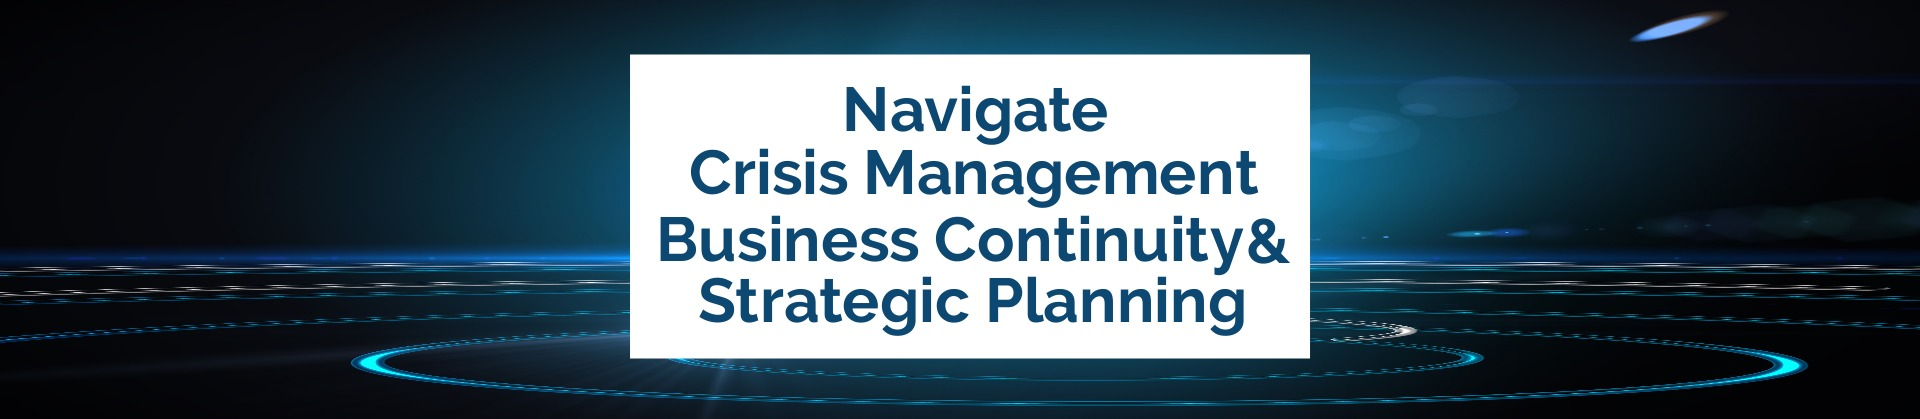 Navigate Crisis, Business Continuity and Strategic Planning